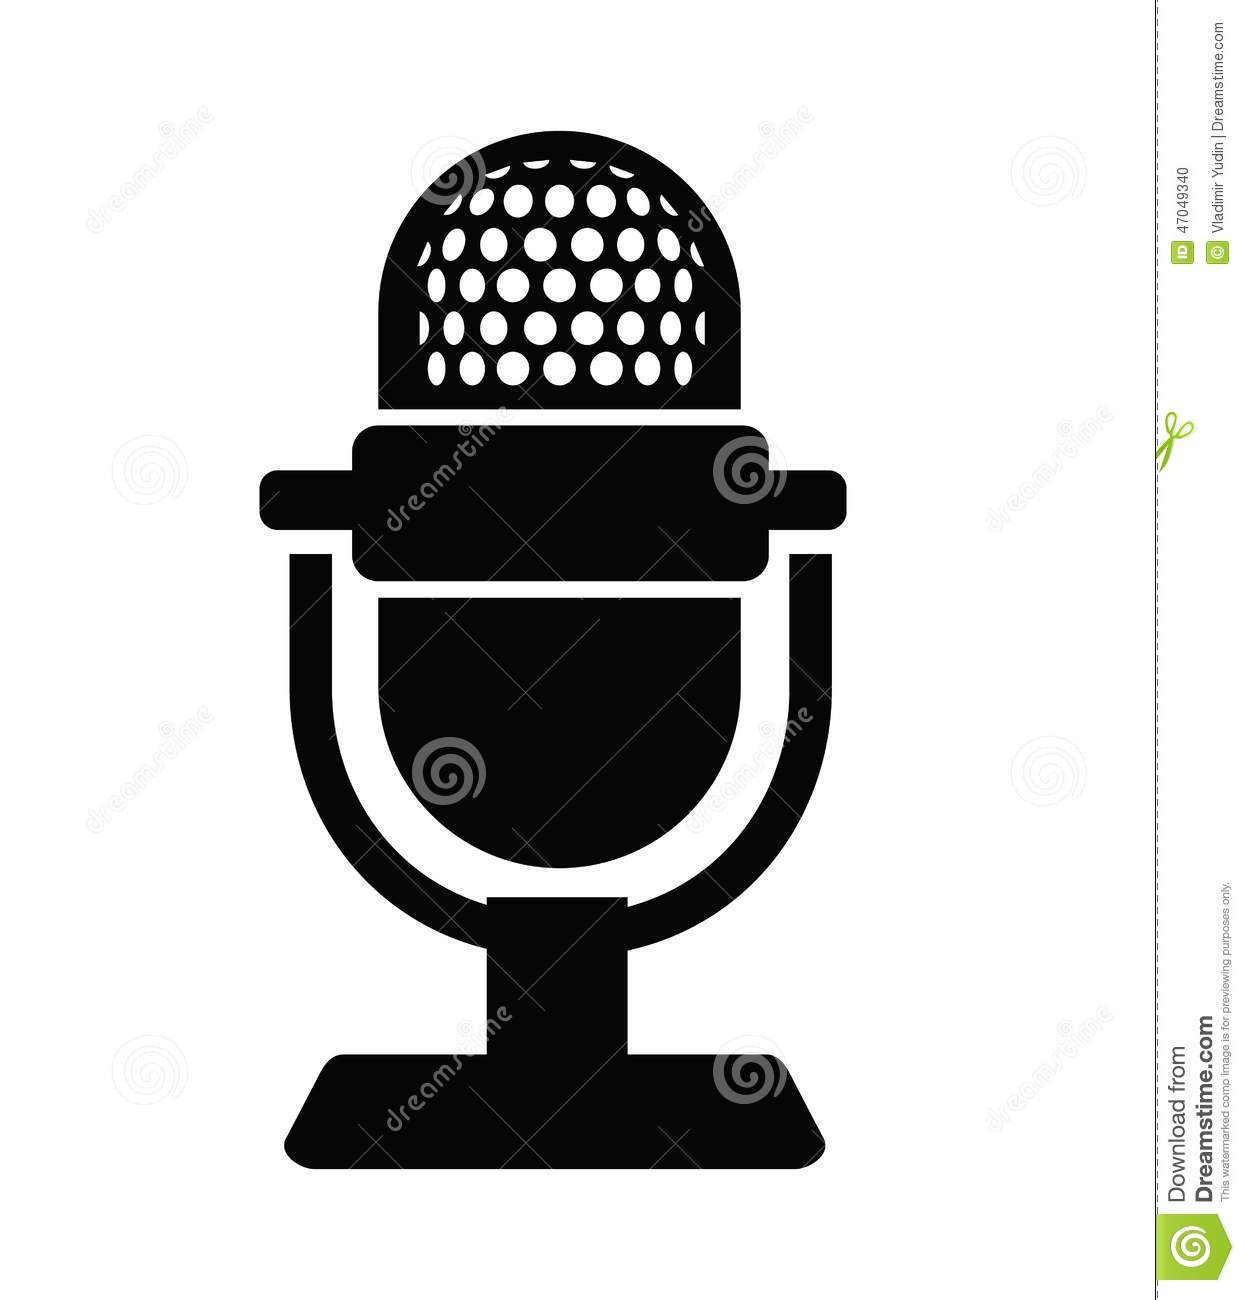 8 Black Microphone Icon Images